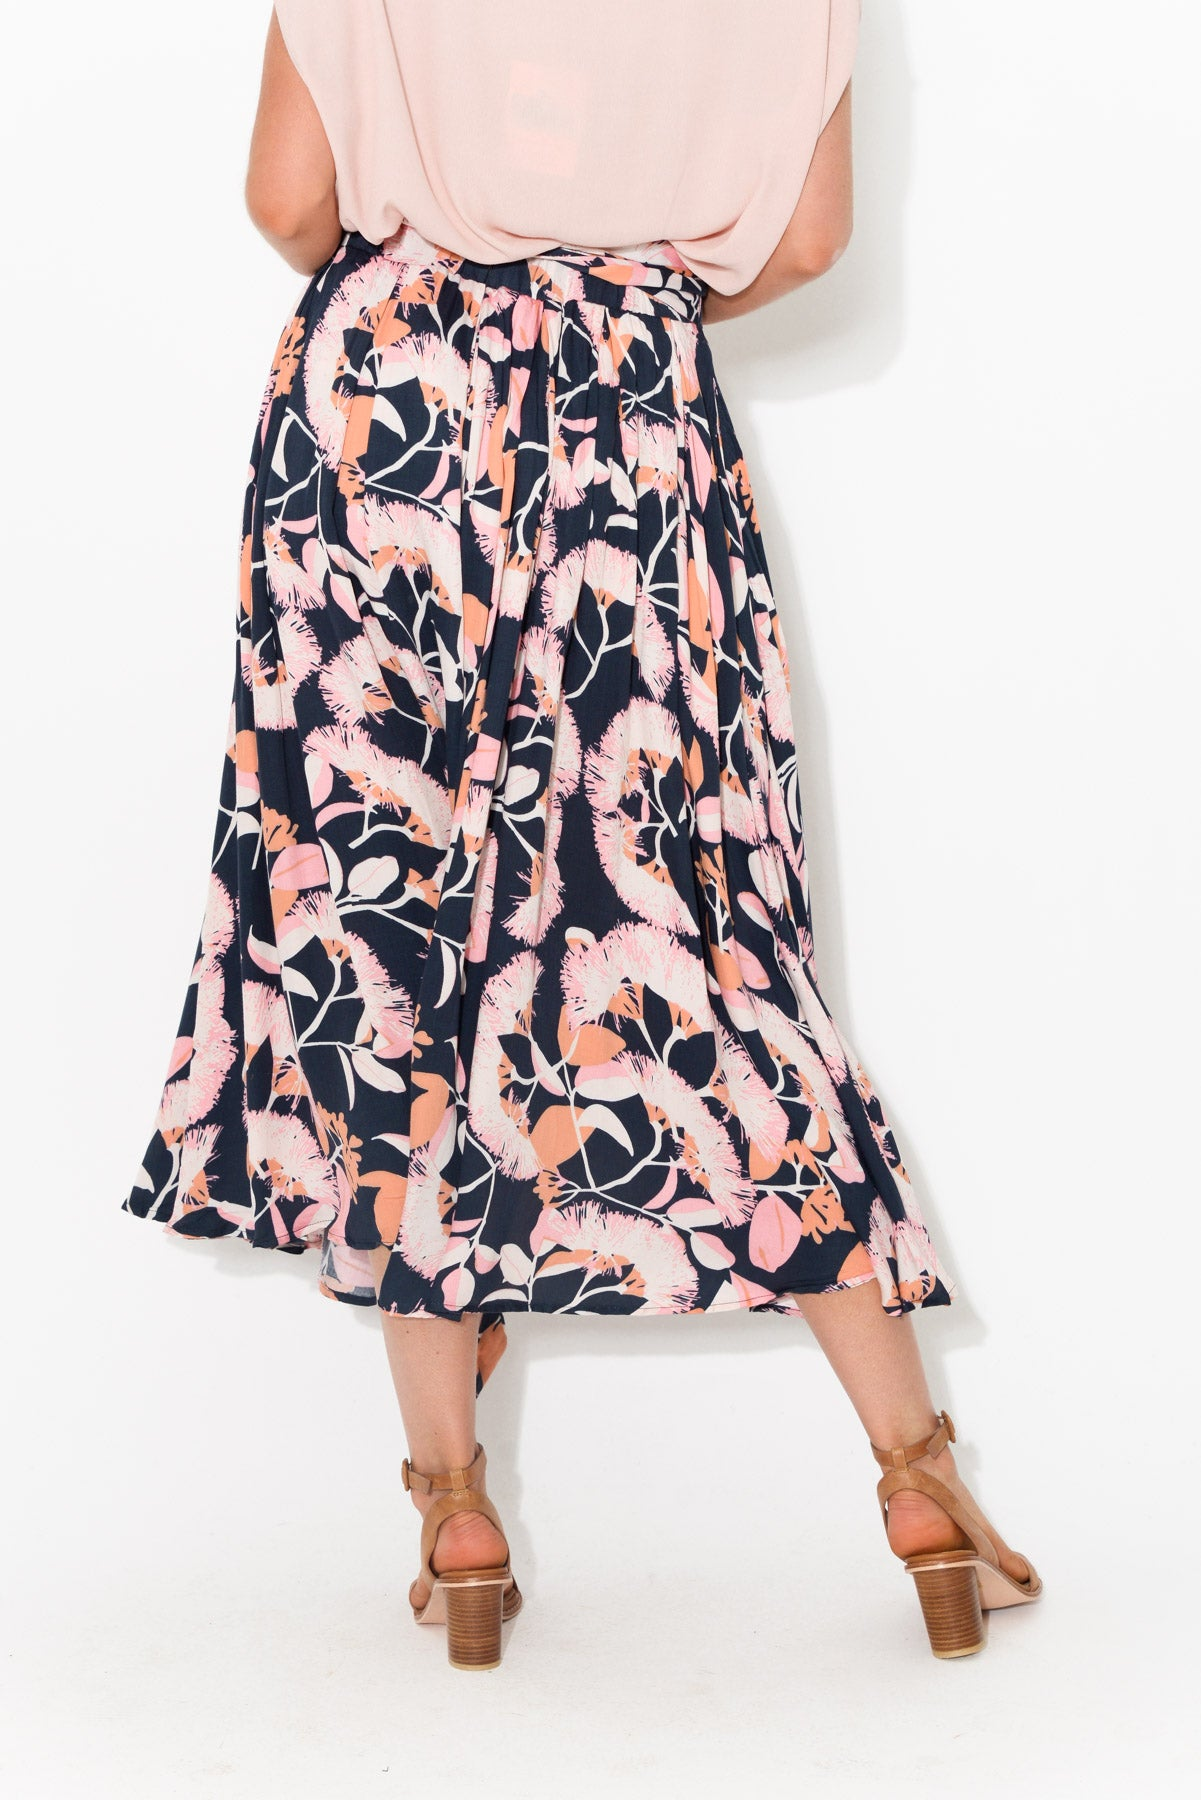 Angie Navy Floral Maxi Skirt - Blue Bungalow